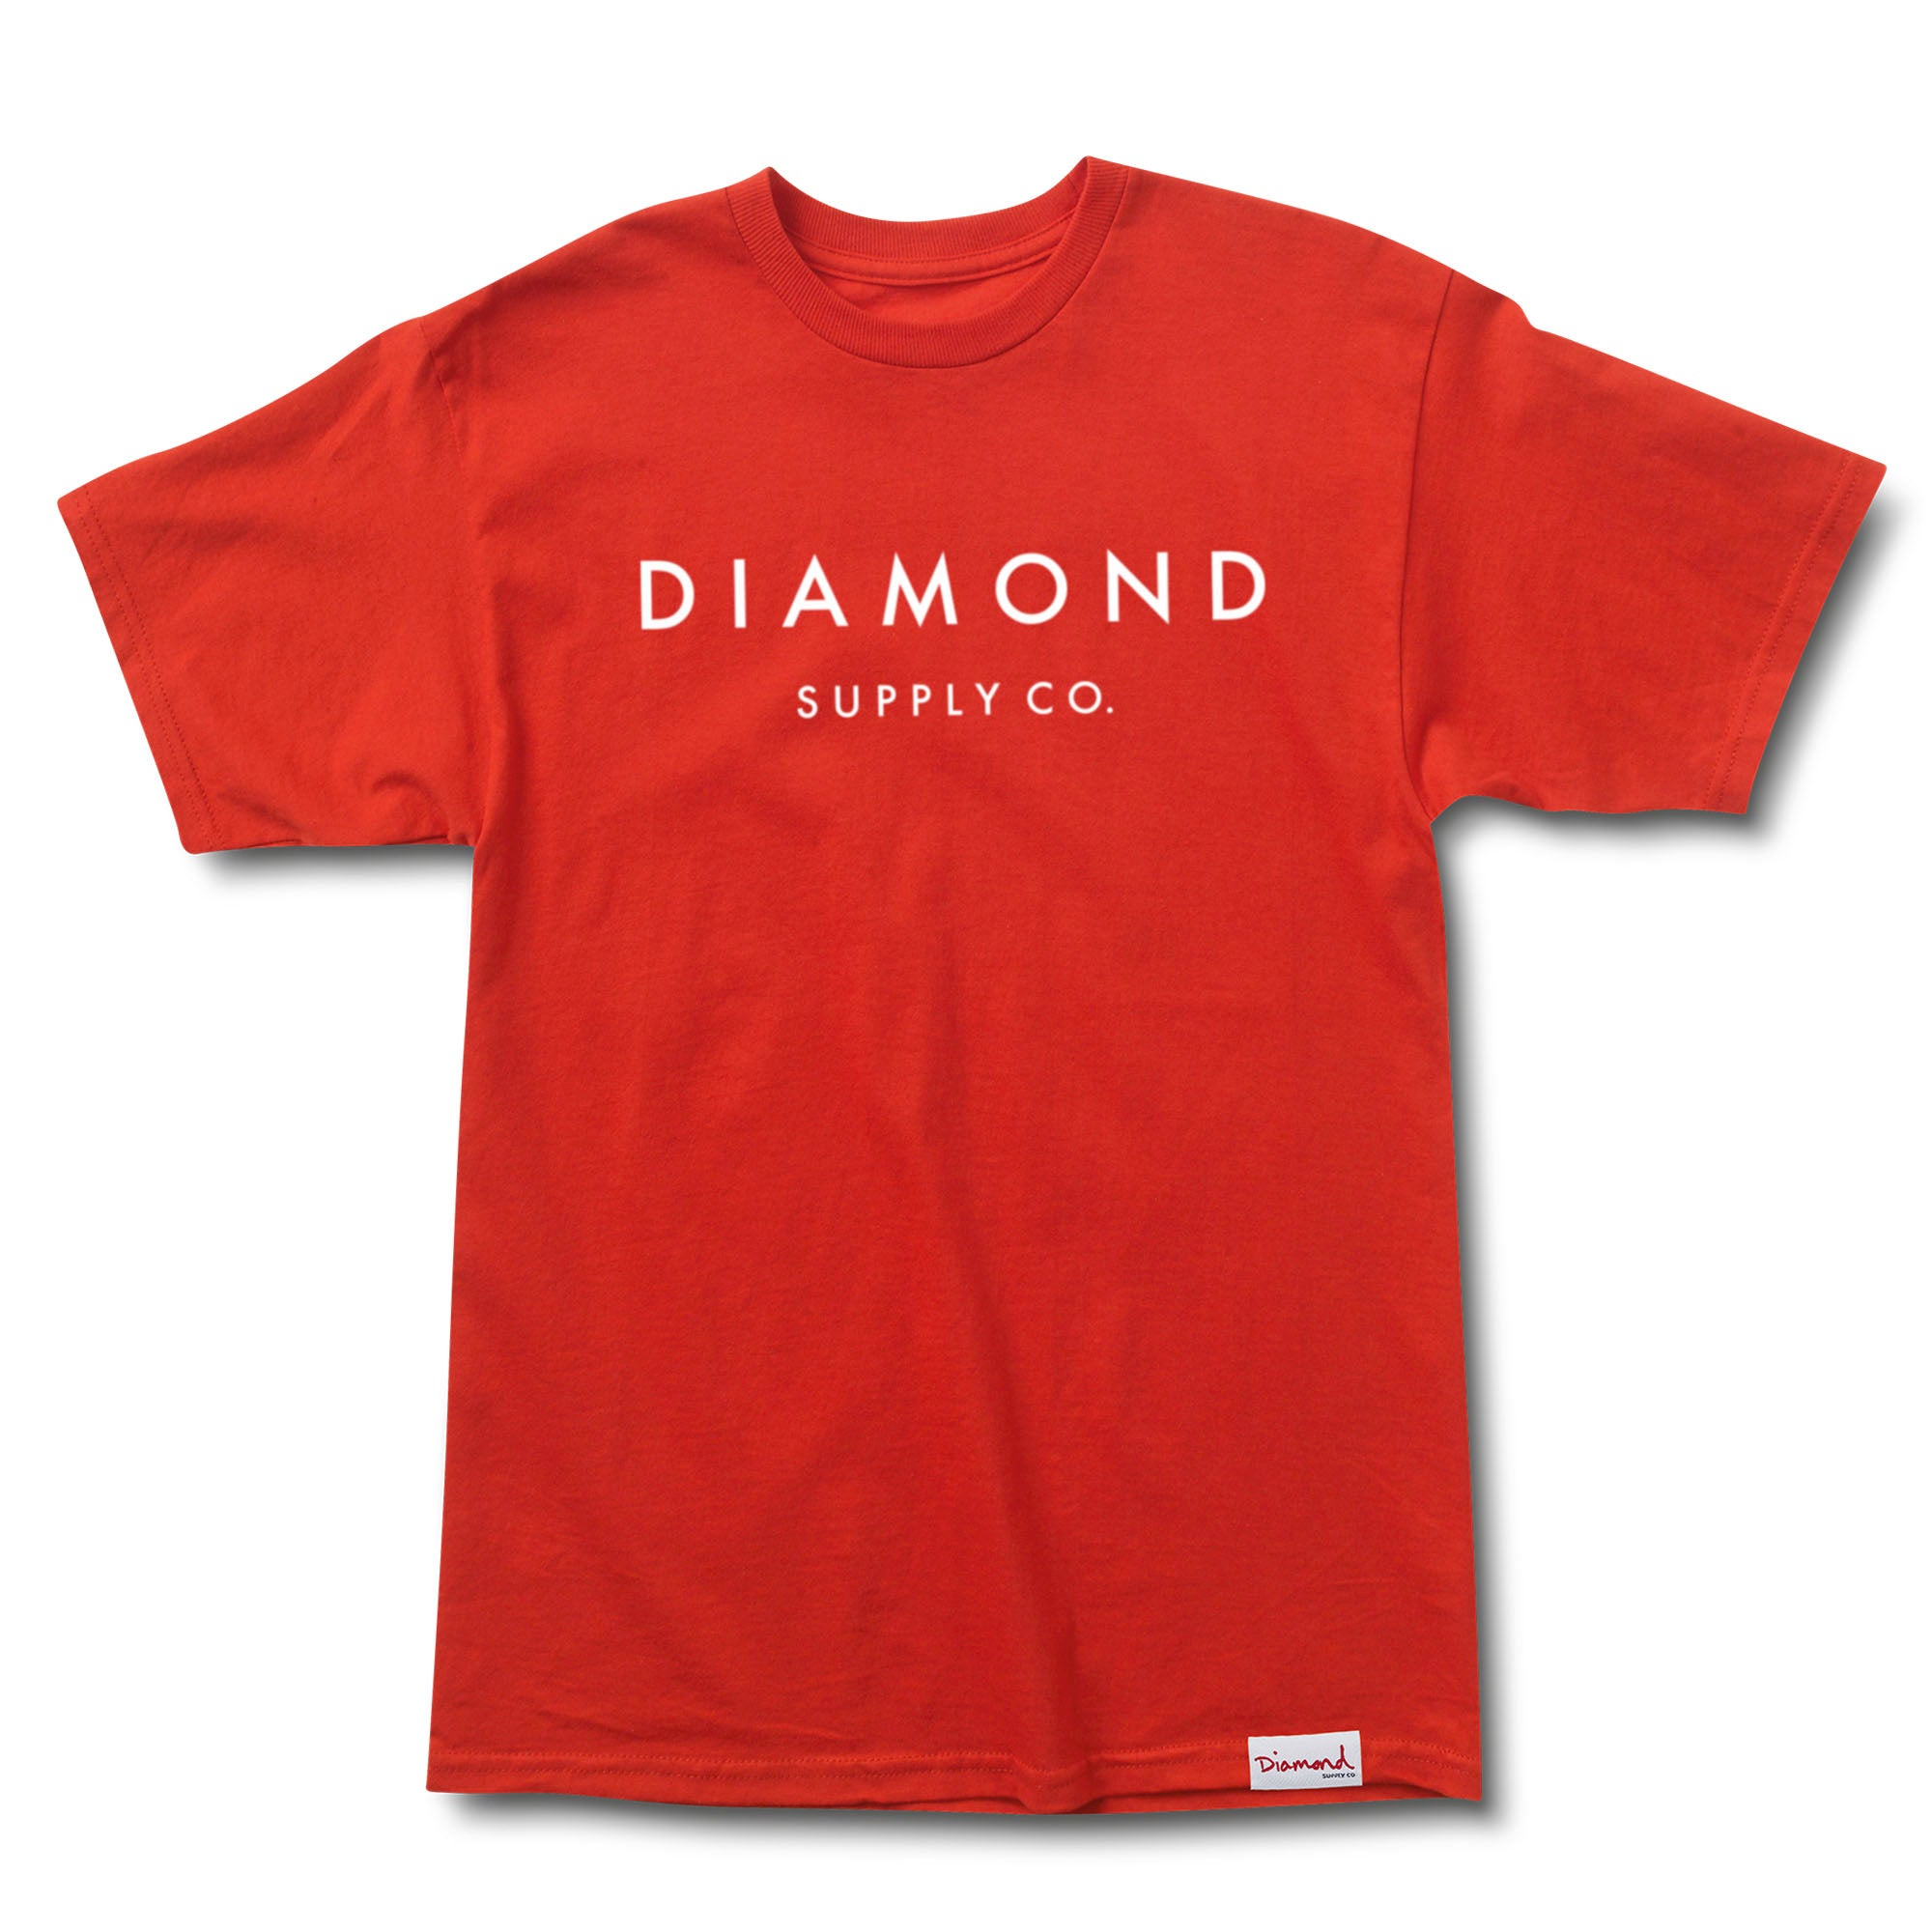 Stone Cut T-Shirt In Red - Red Diamond Supply Company Cheap Online Shop 2018 New Sale Online Extremely Cheap Wide Range Of Discount Footaction hGA2Ef4Ey